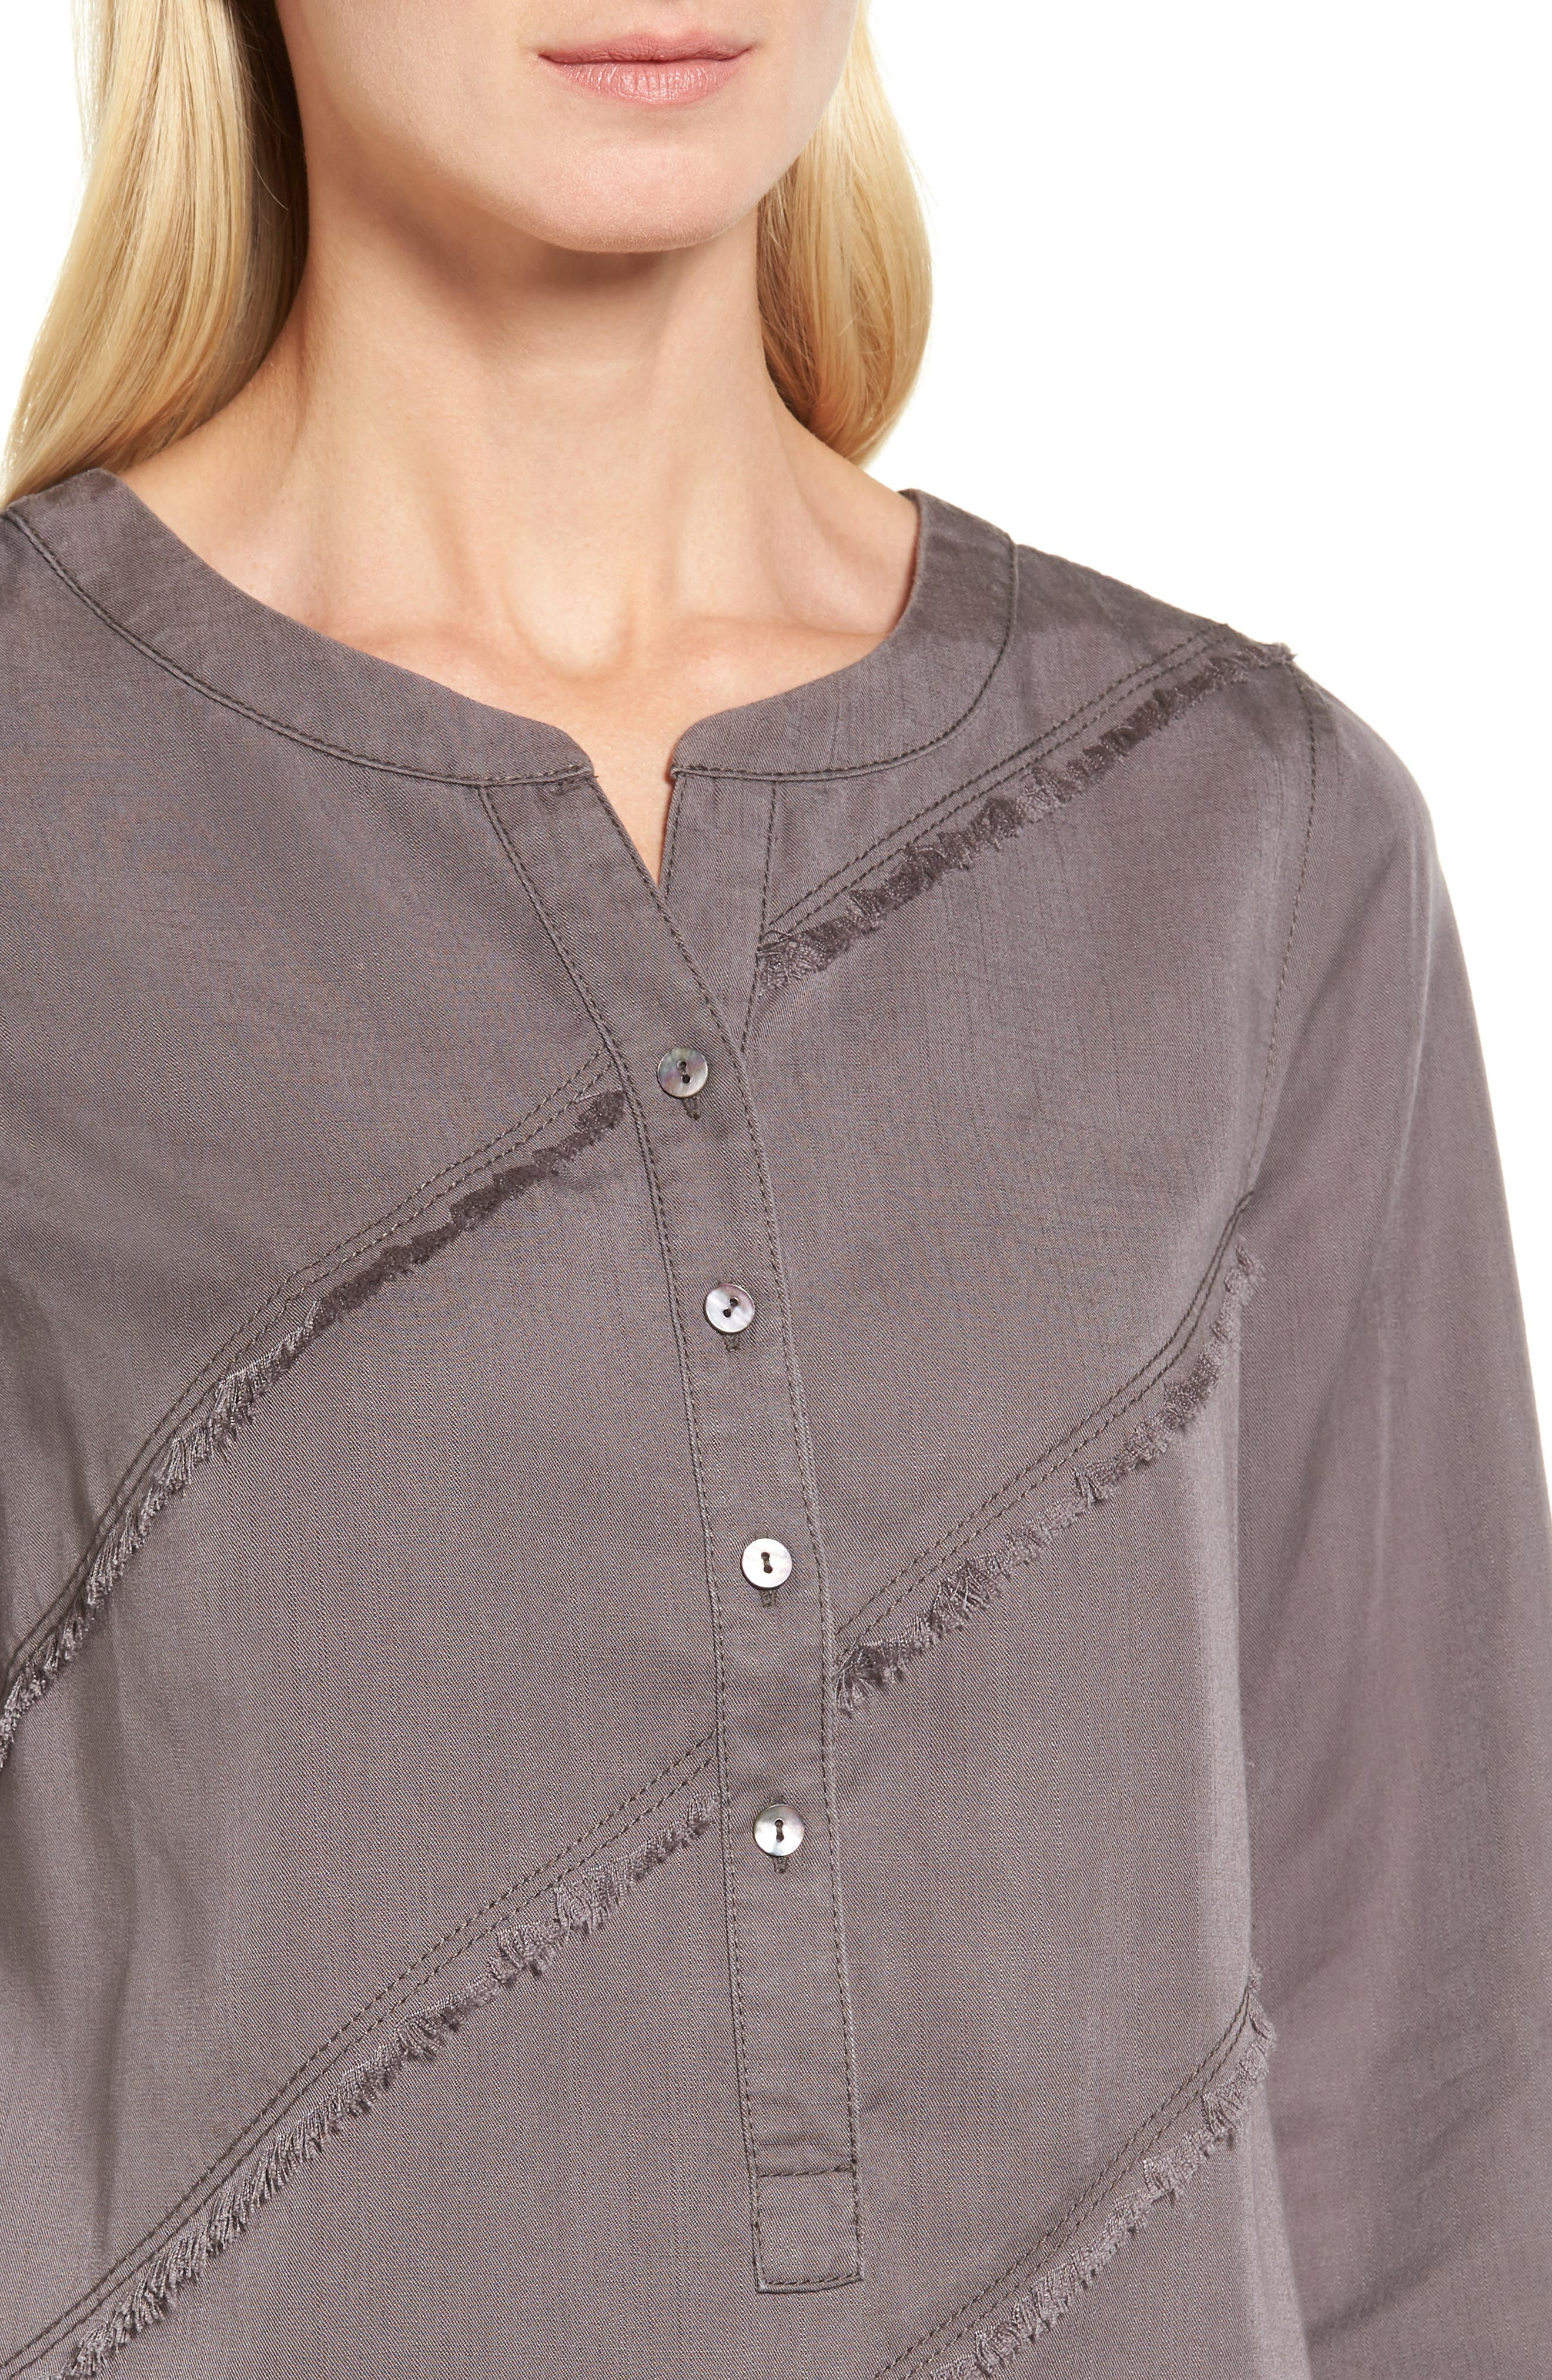 Tranquil Tunic Top,                             Alternate thumbnail 4, color,                             Warm Grey